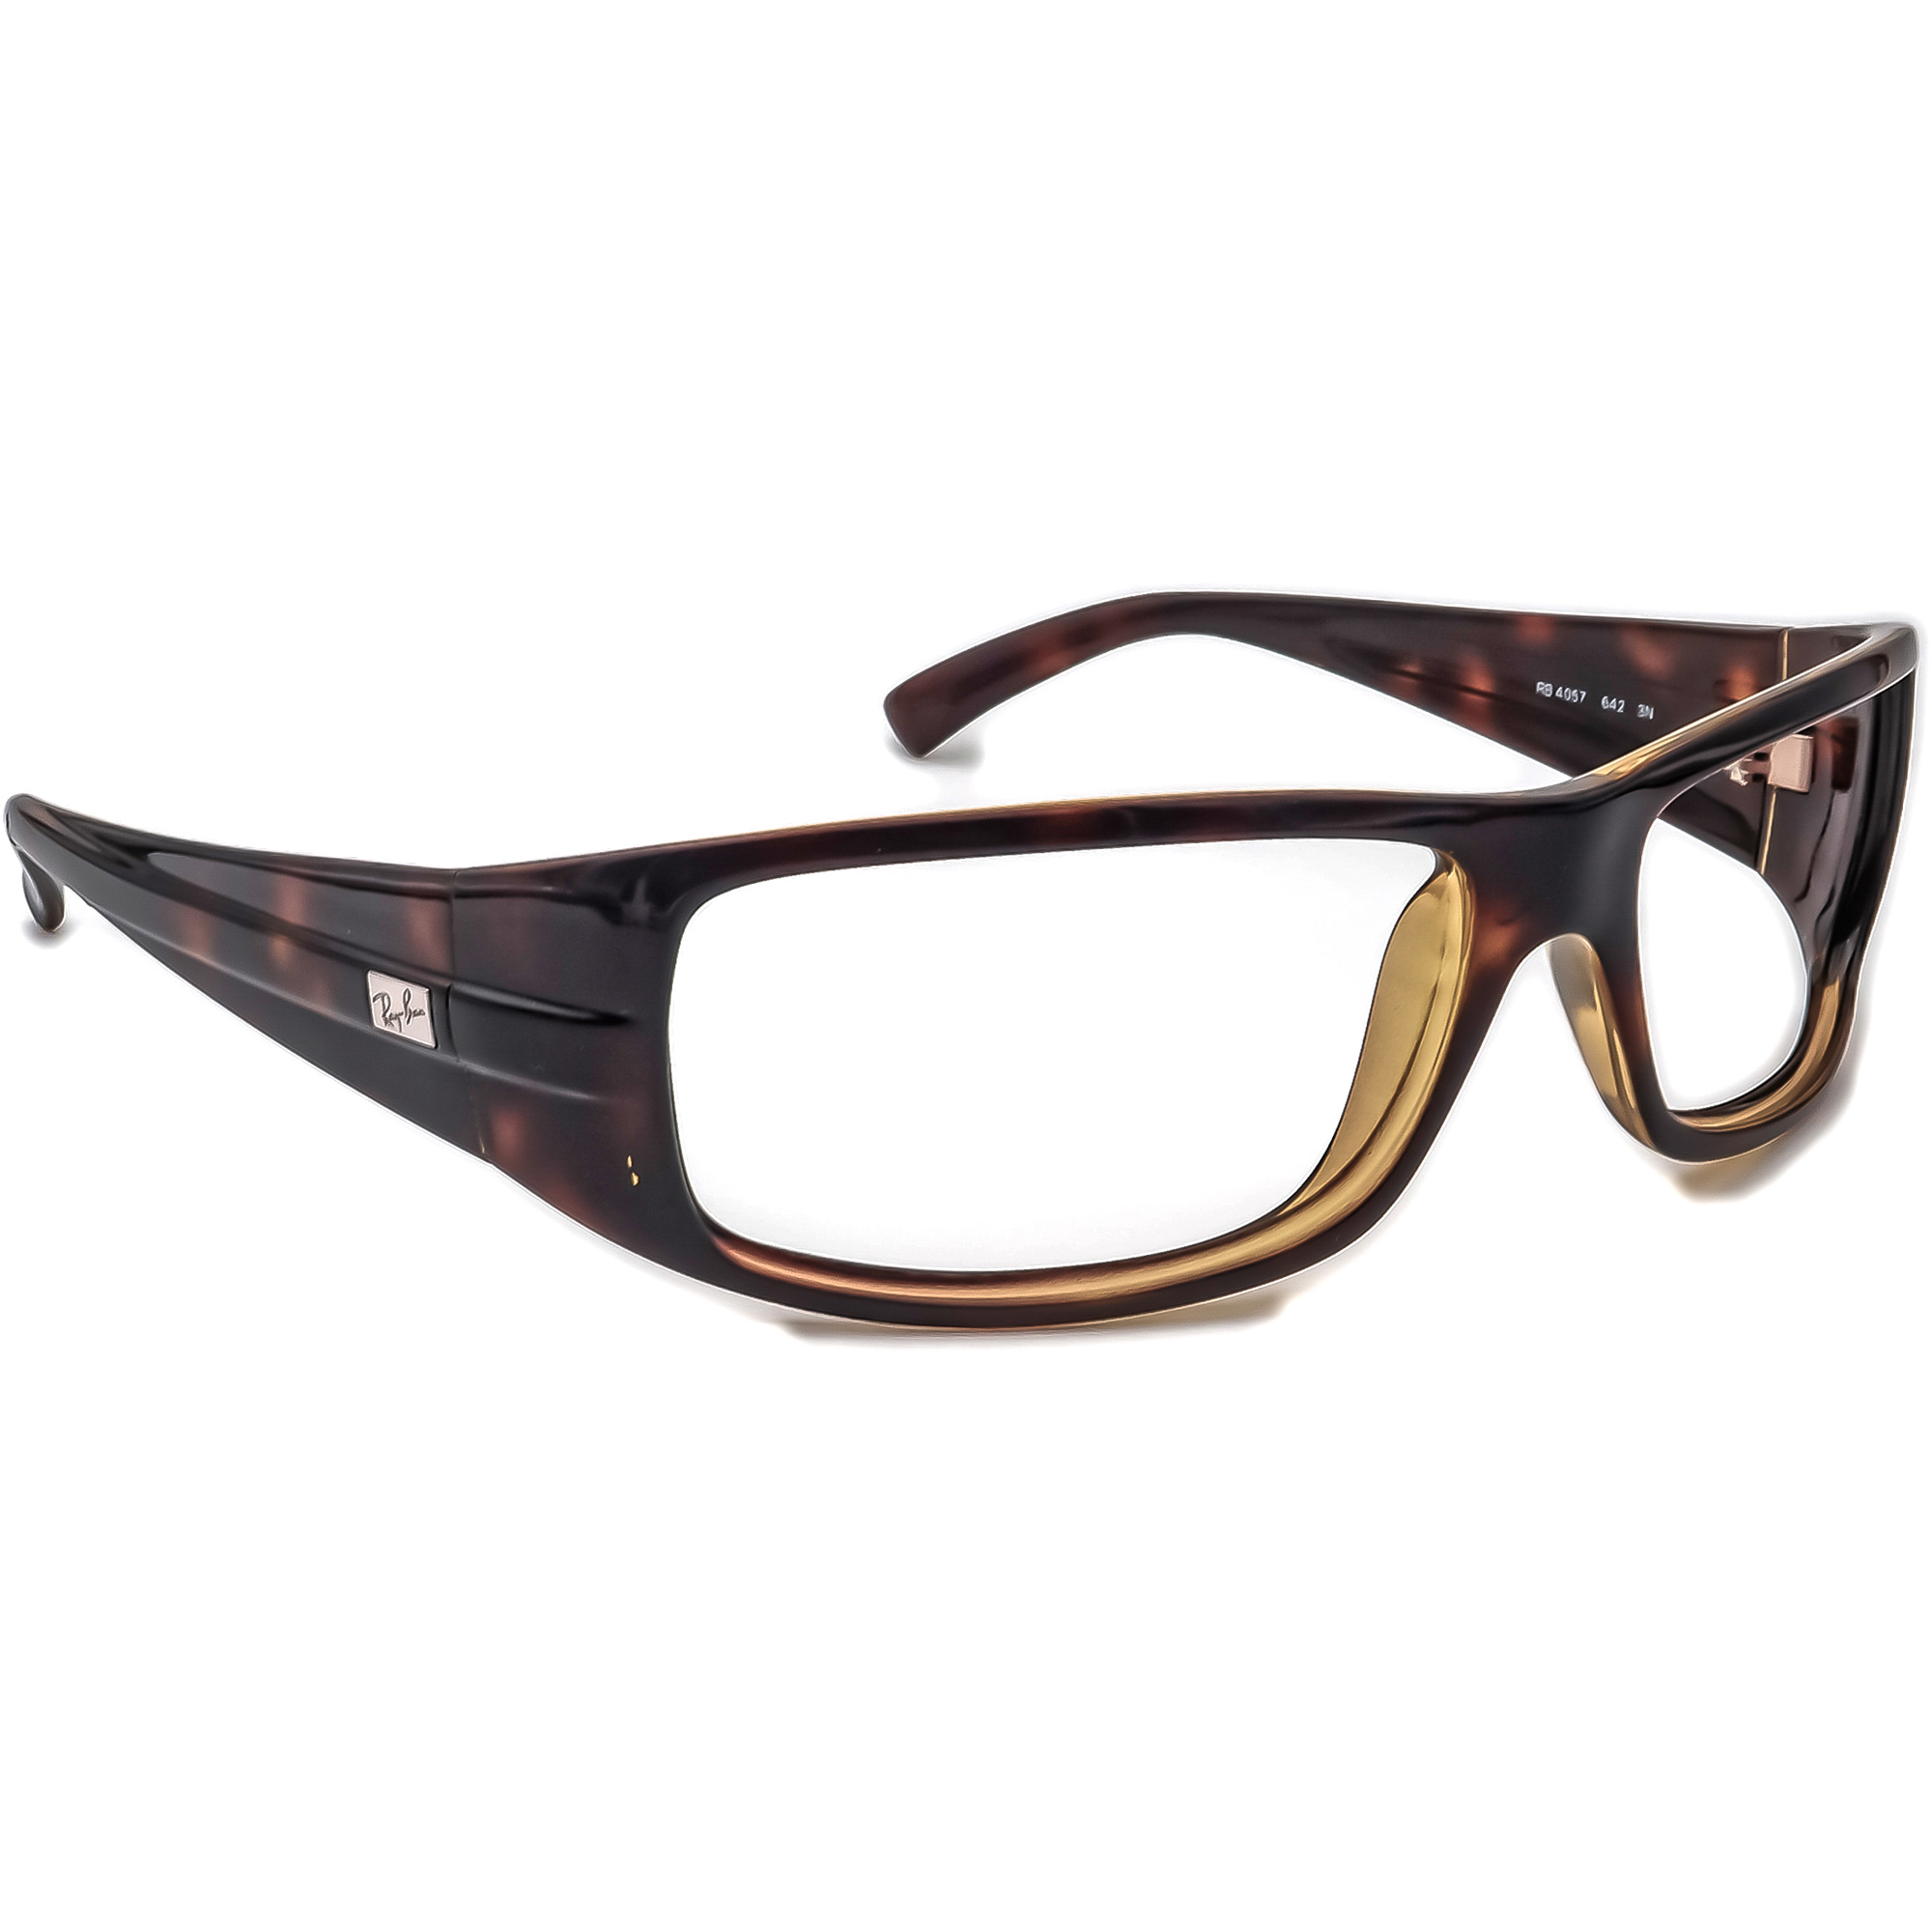 Ray-Ban RB 4057 642 Sunglasses Frame Only